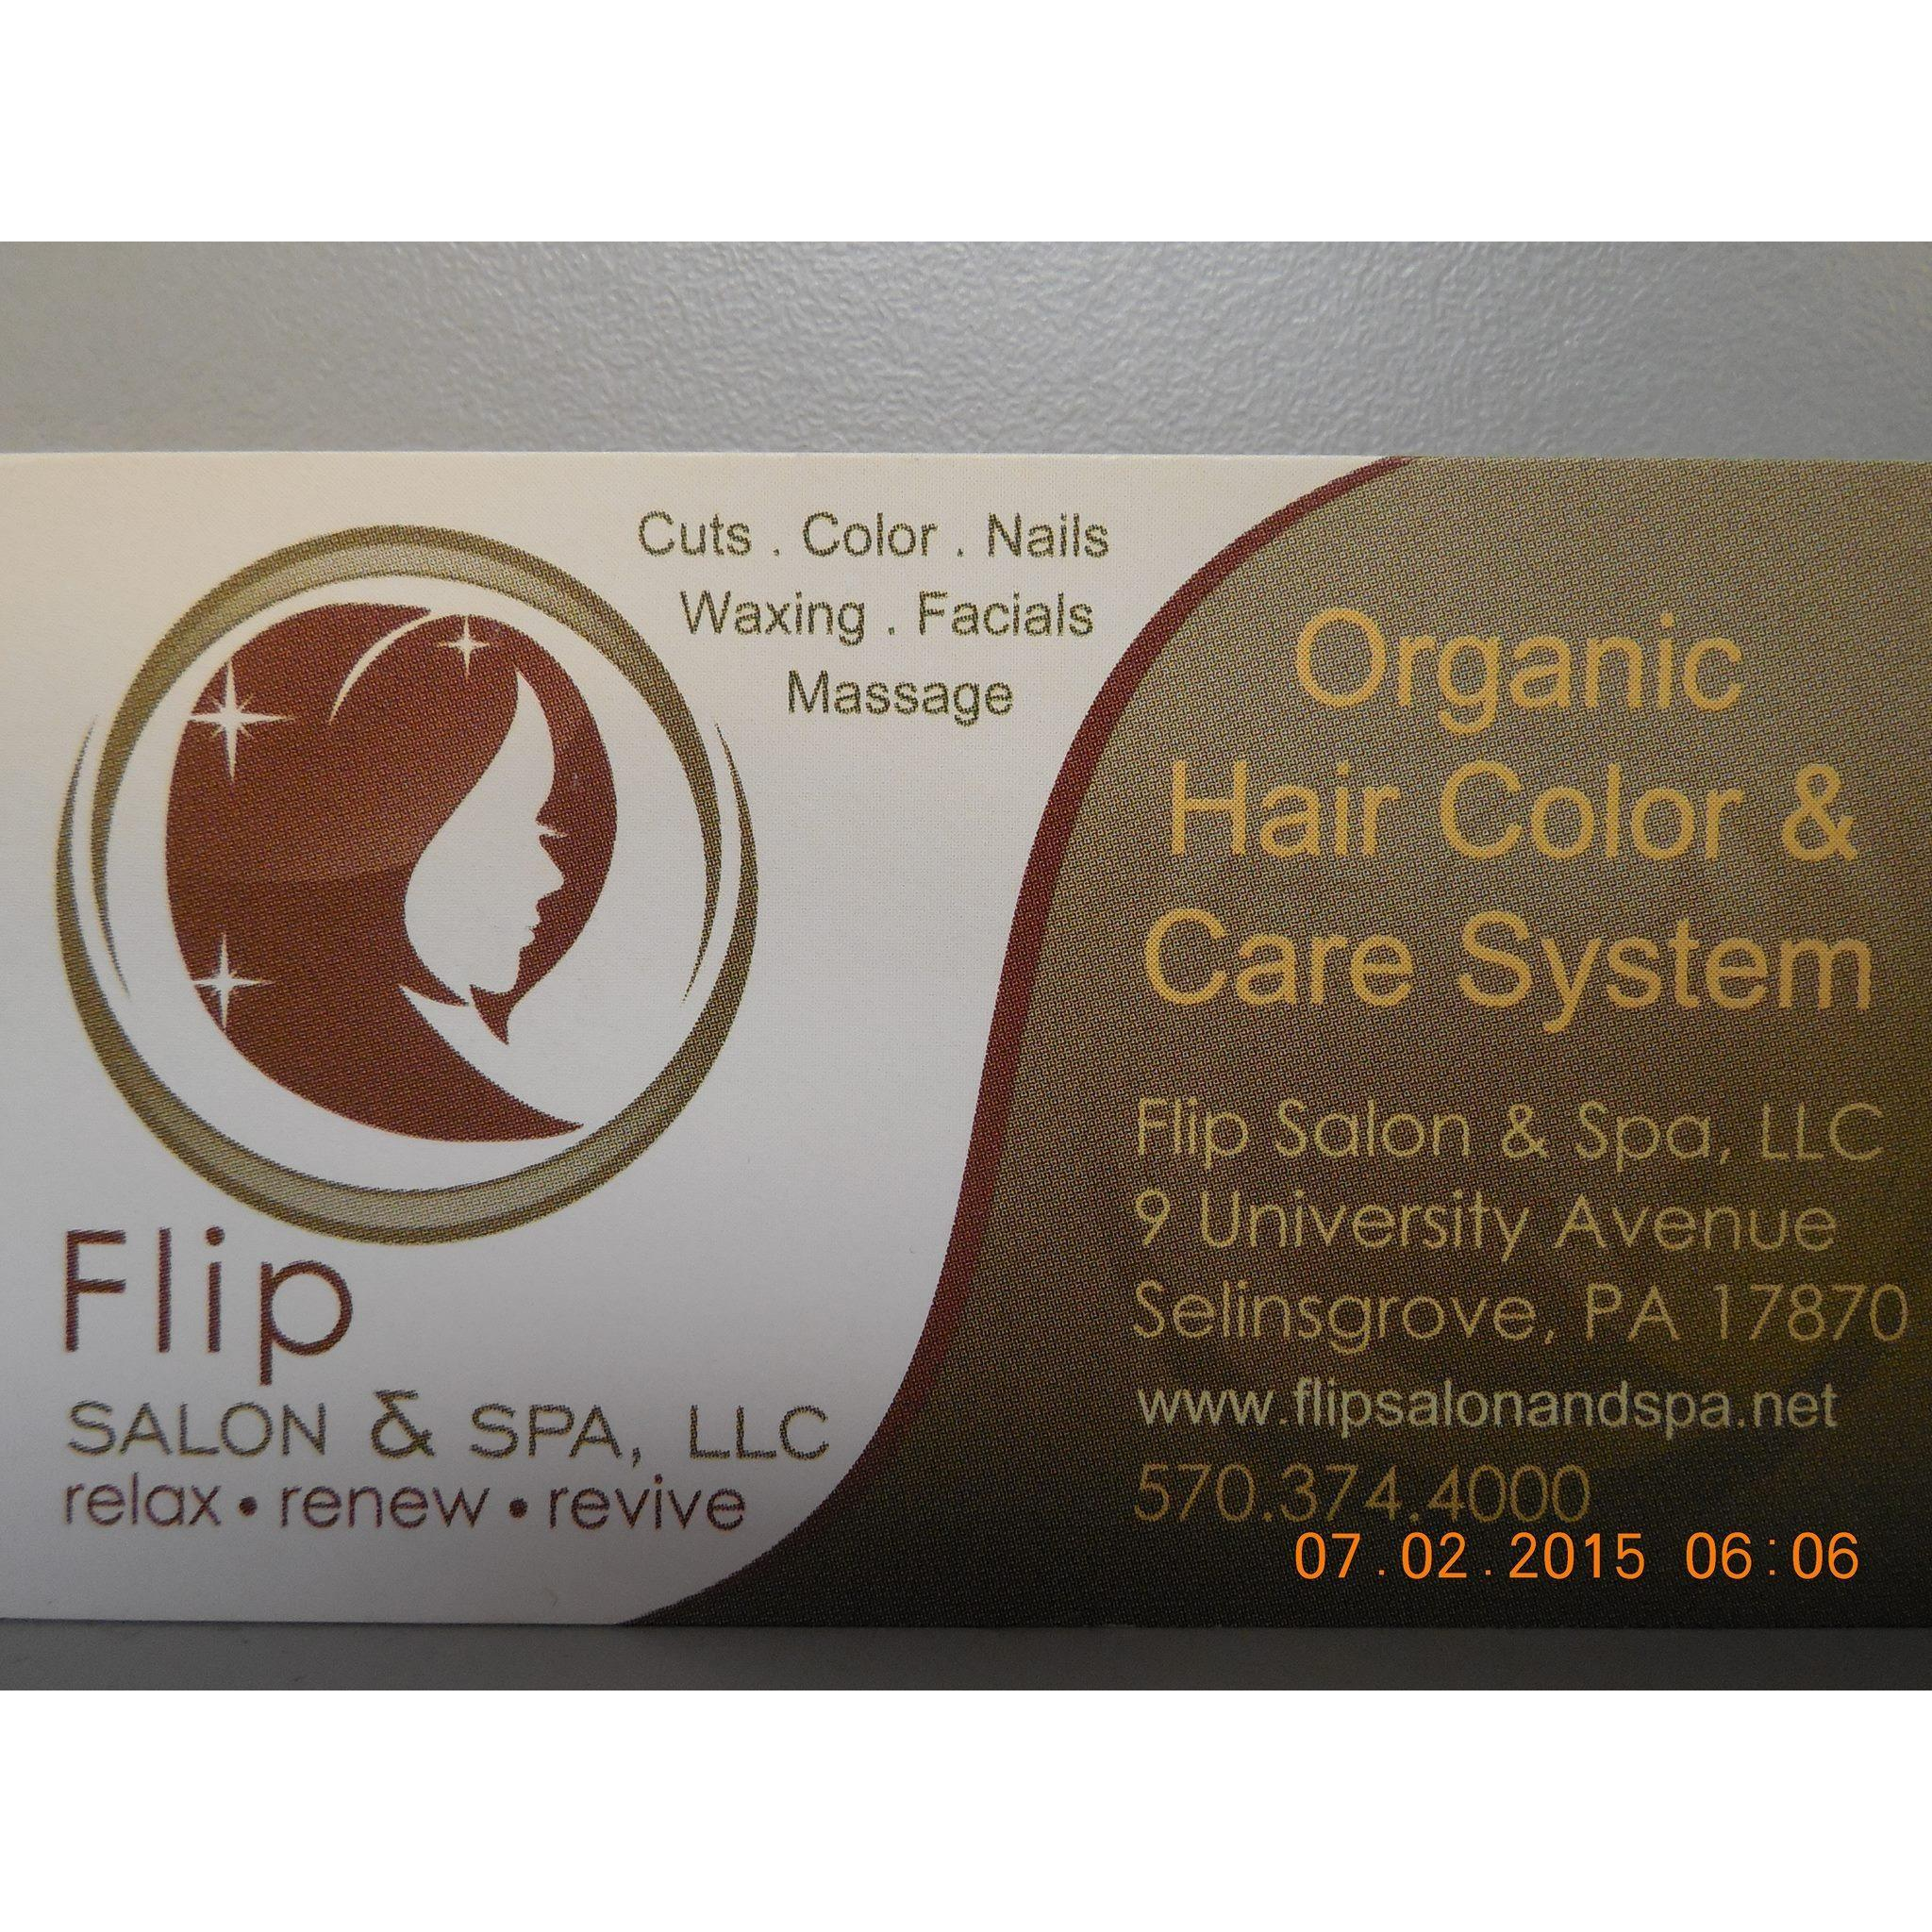 Flip Salon and Spa Llc